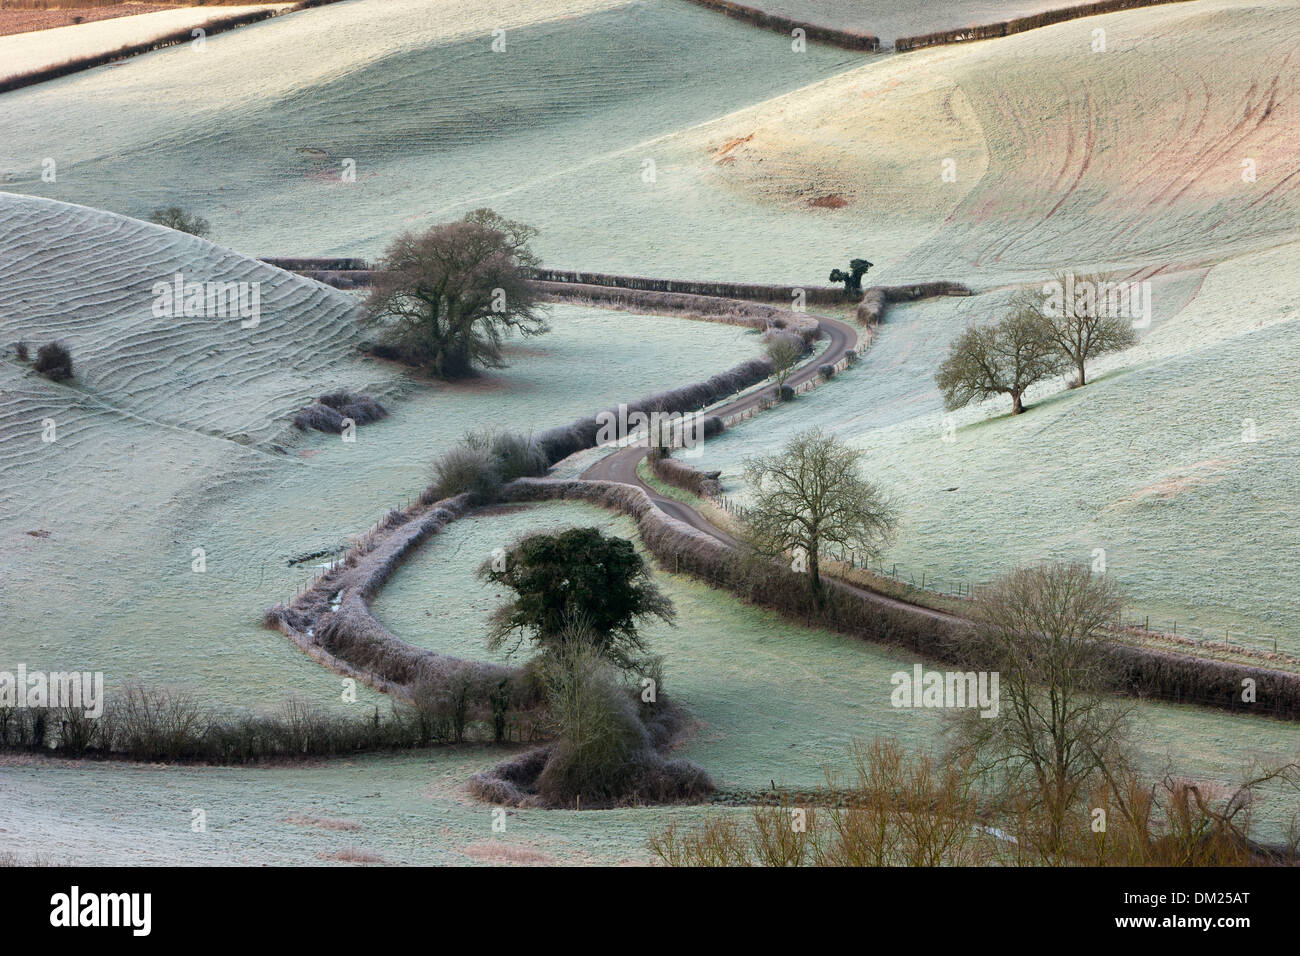 a frosty morning overlooking the road to Oborne, Dorset, England Stock Photo